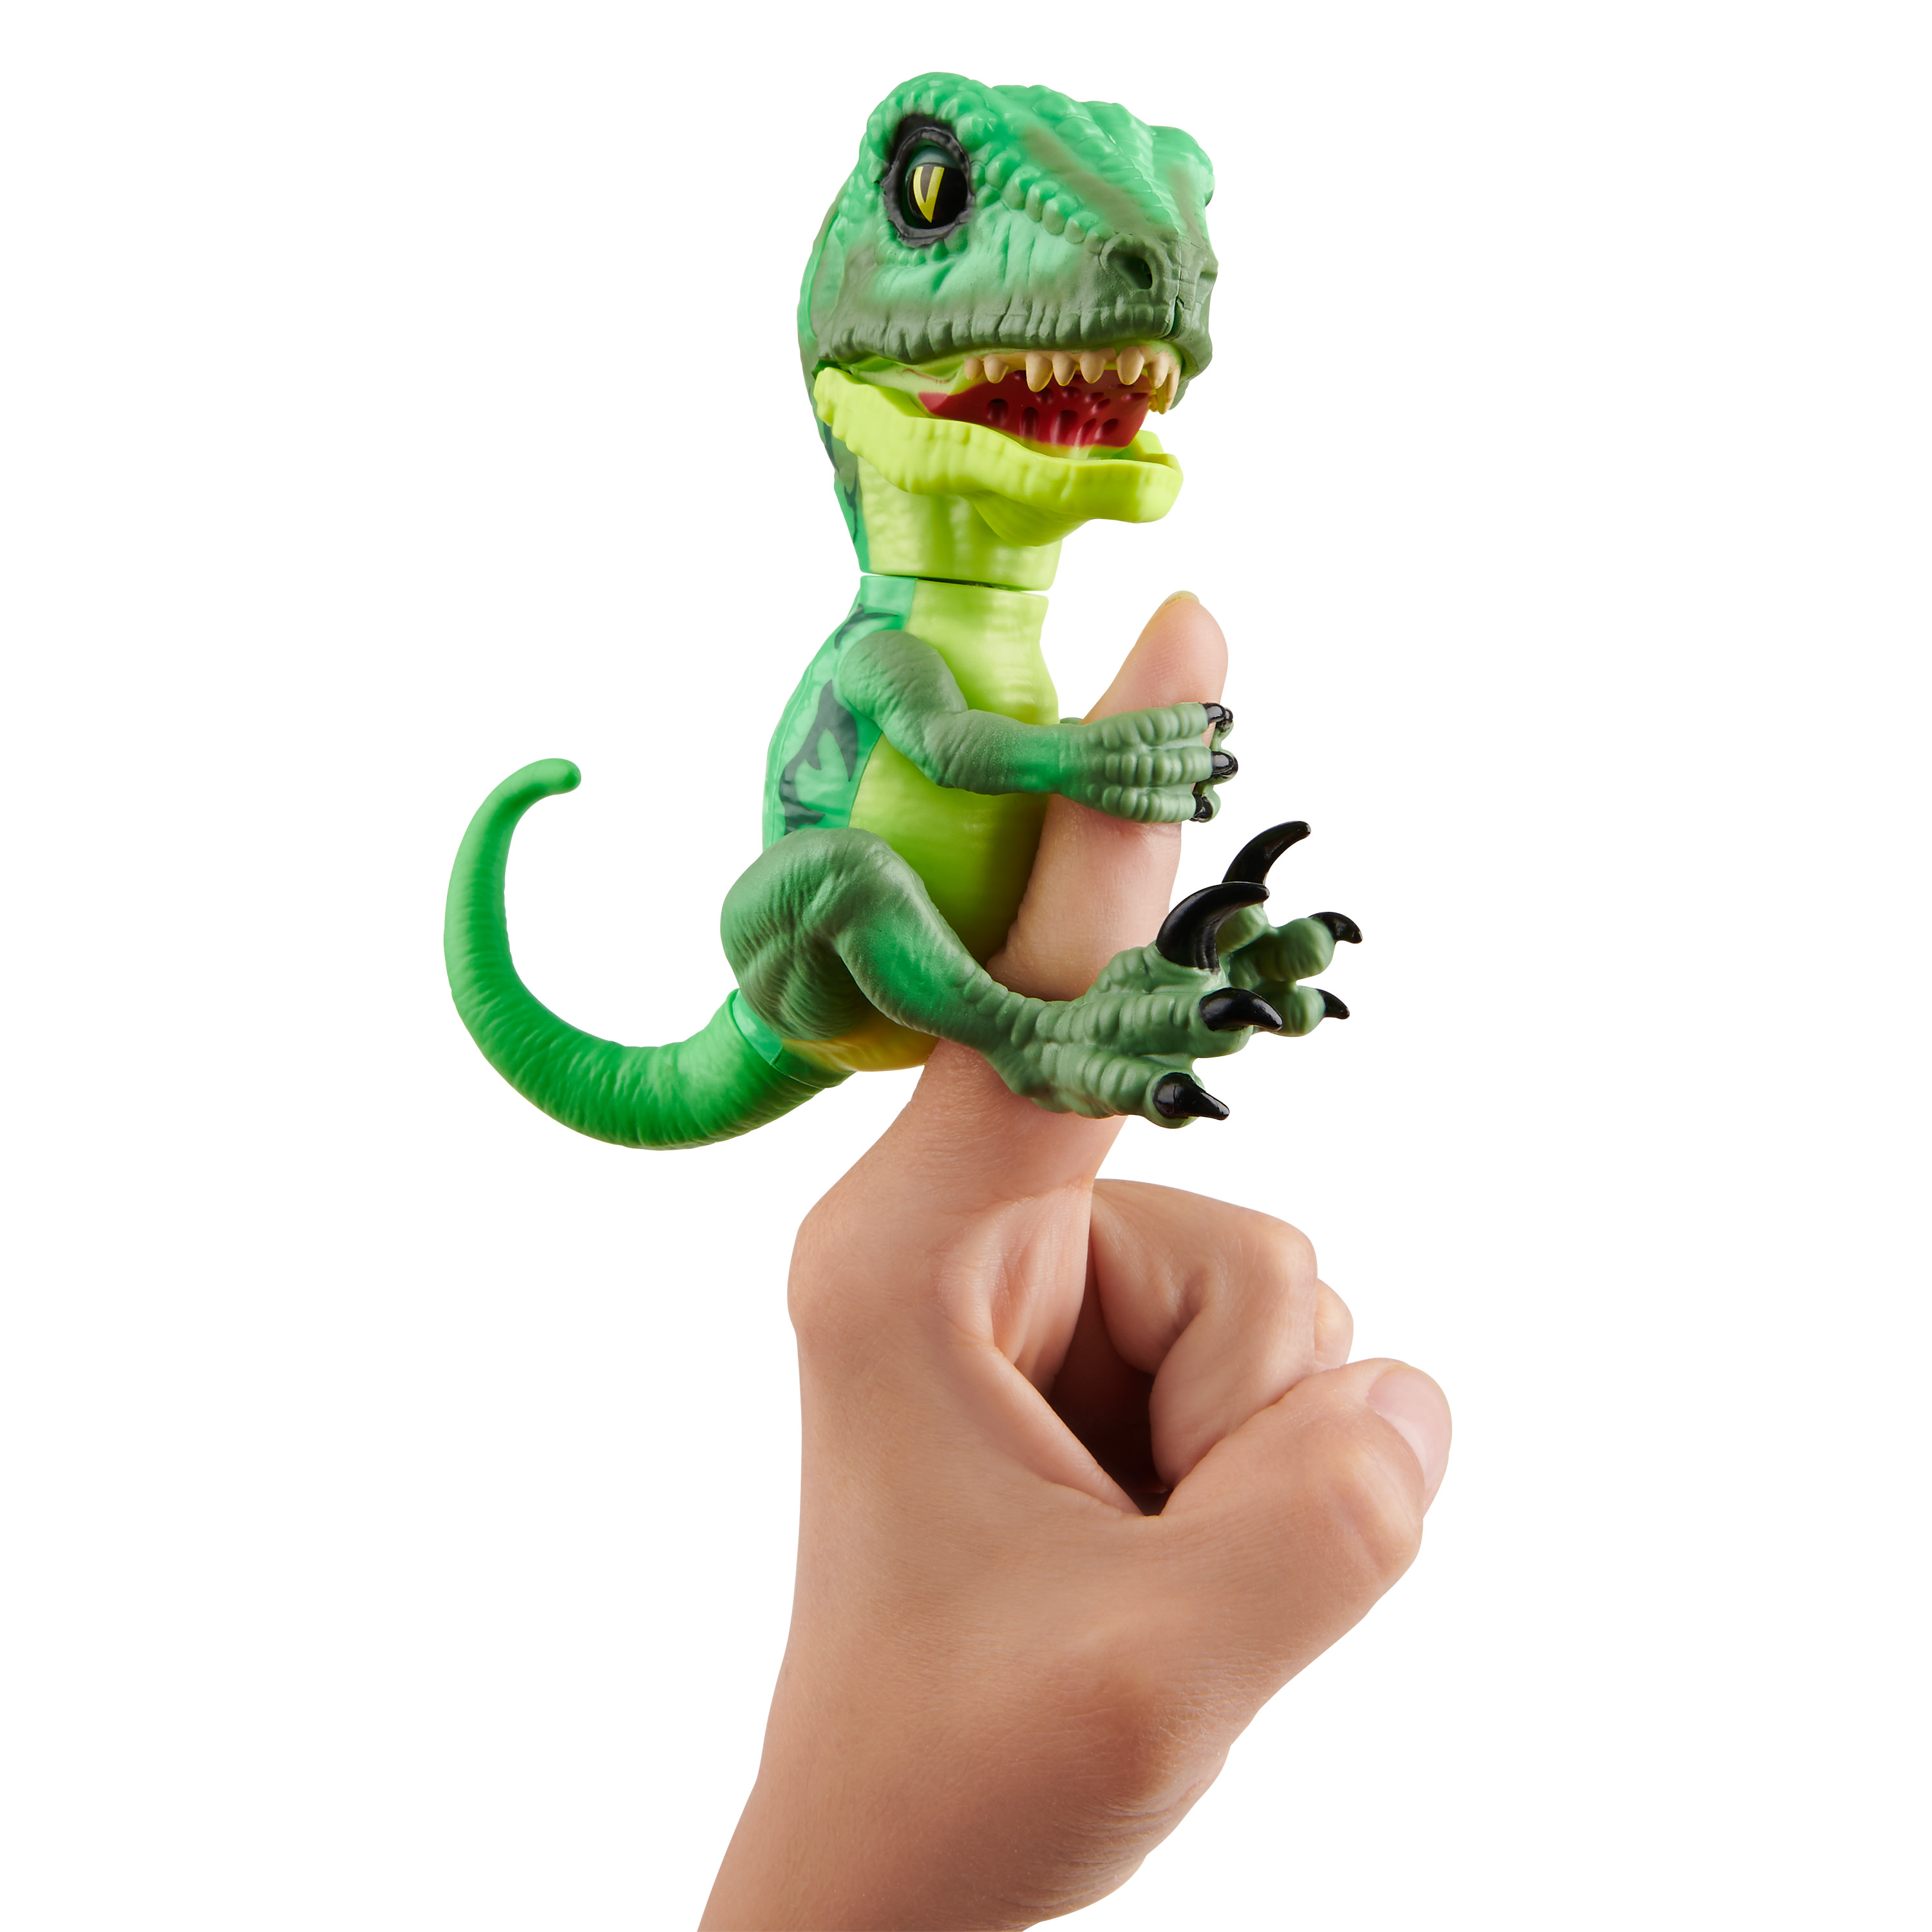 Untamed Raptor - Series 2- by Fingerlings - Hazard (Green) - Interactive Collectible Dinosaur - By WowWee